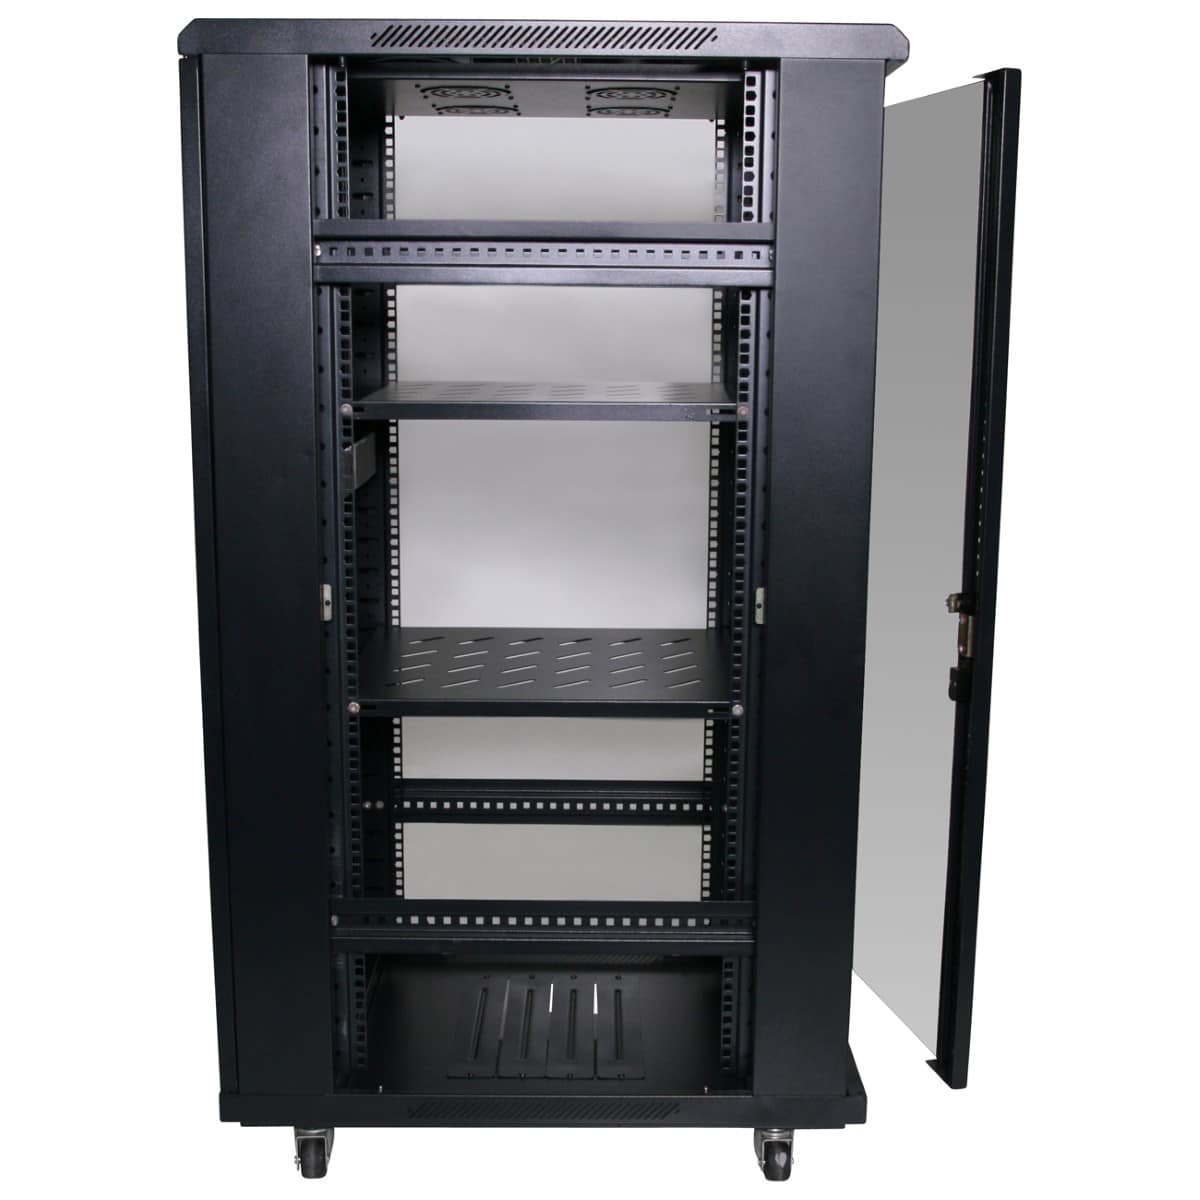 27ru 800mm Deep X 600mm Wide Rack Cabinet Hcc